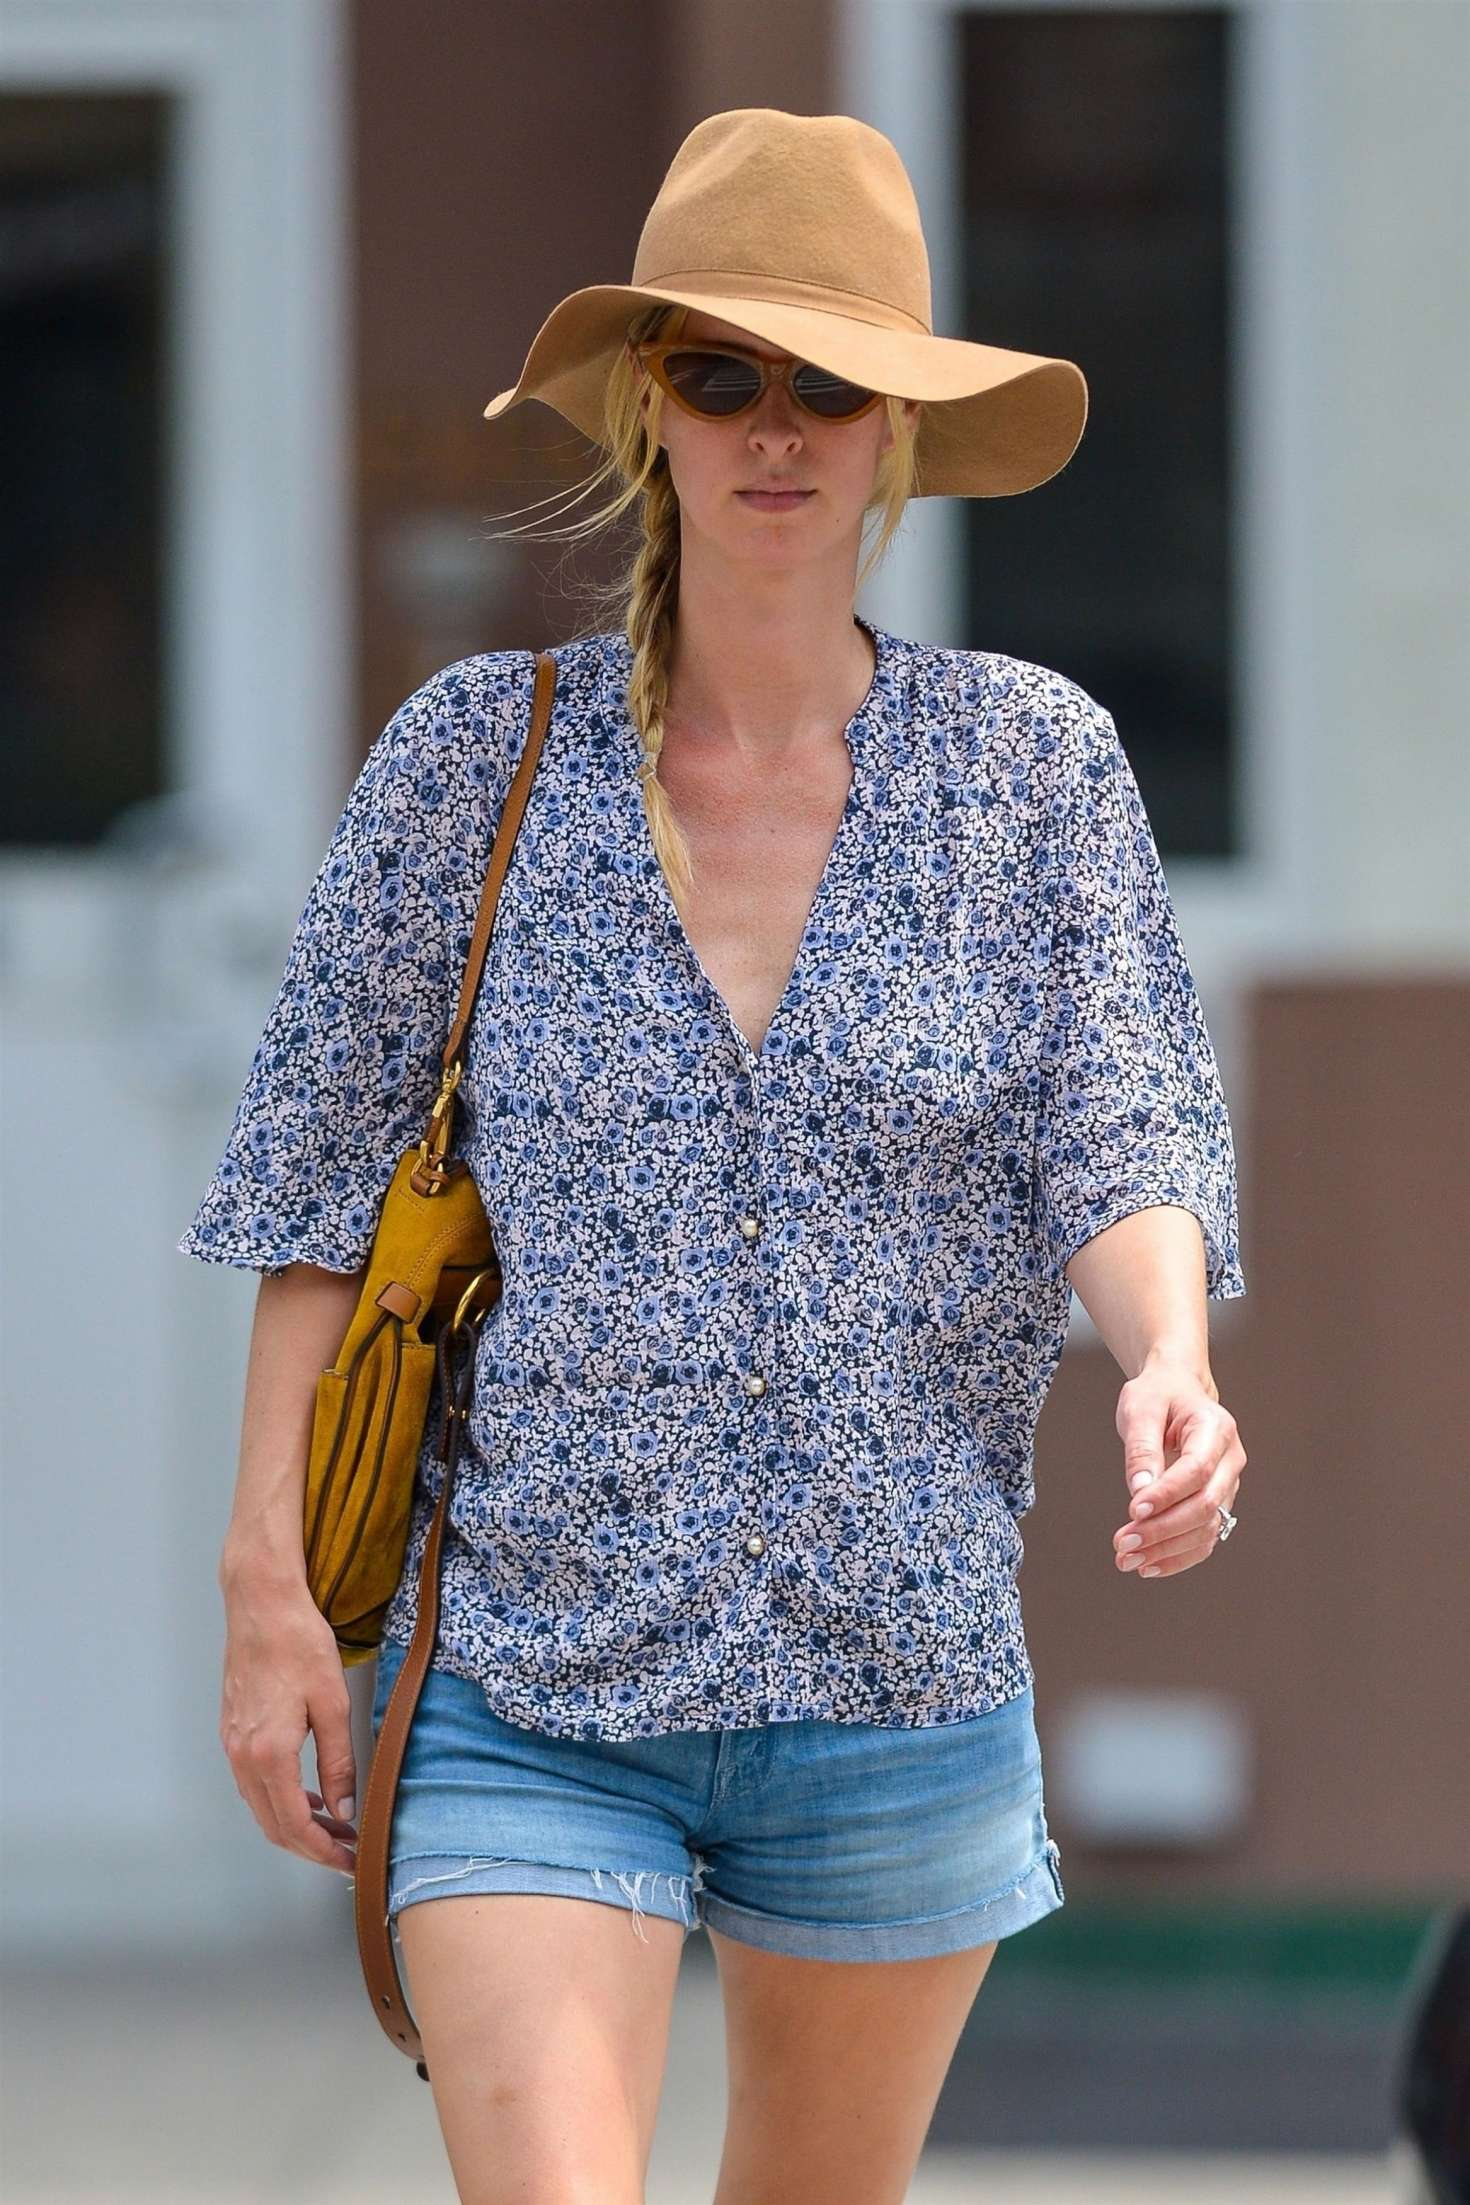 Nicky Hilton in Denim Shorts - Out in New York City